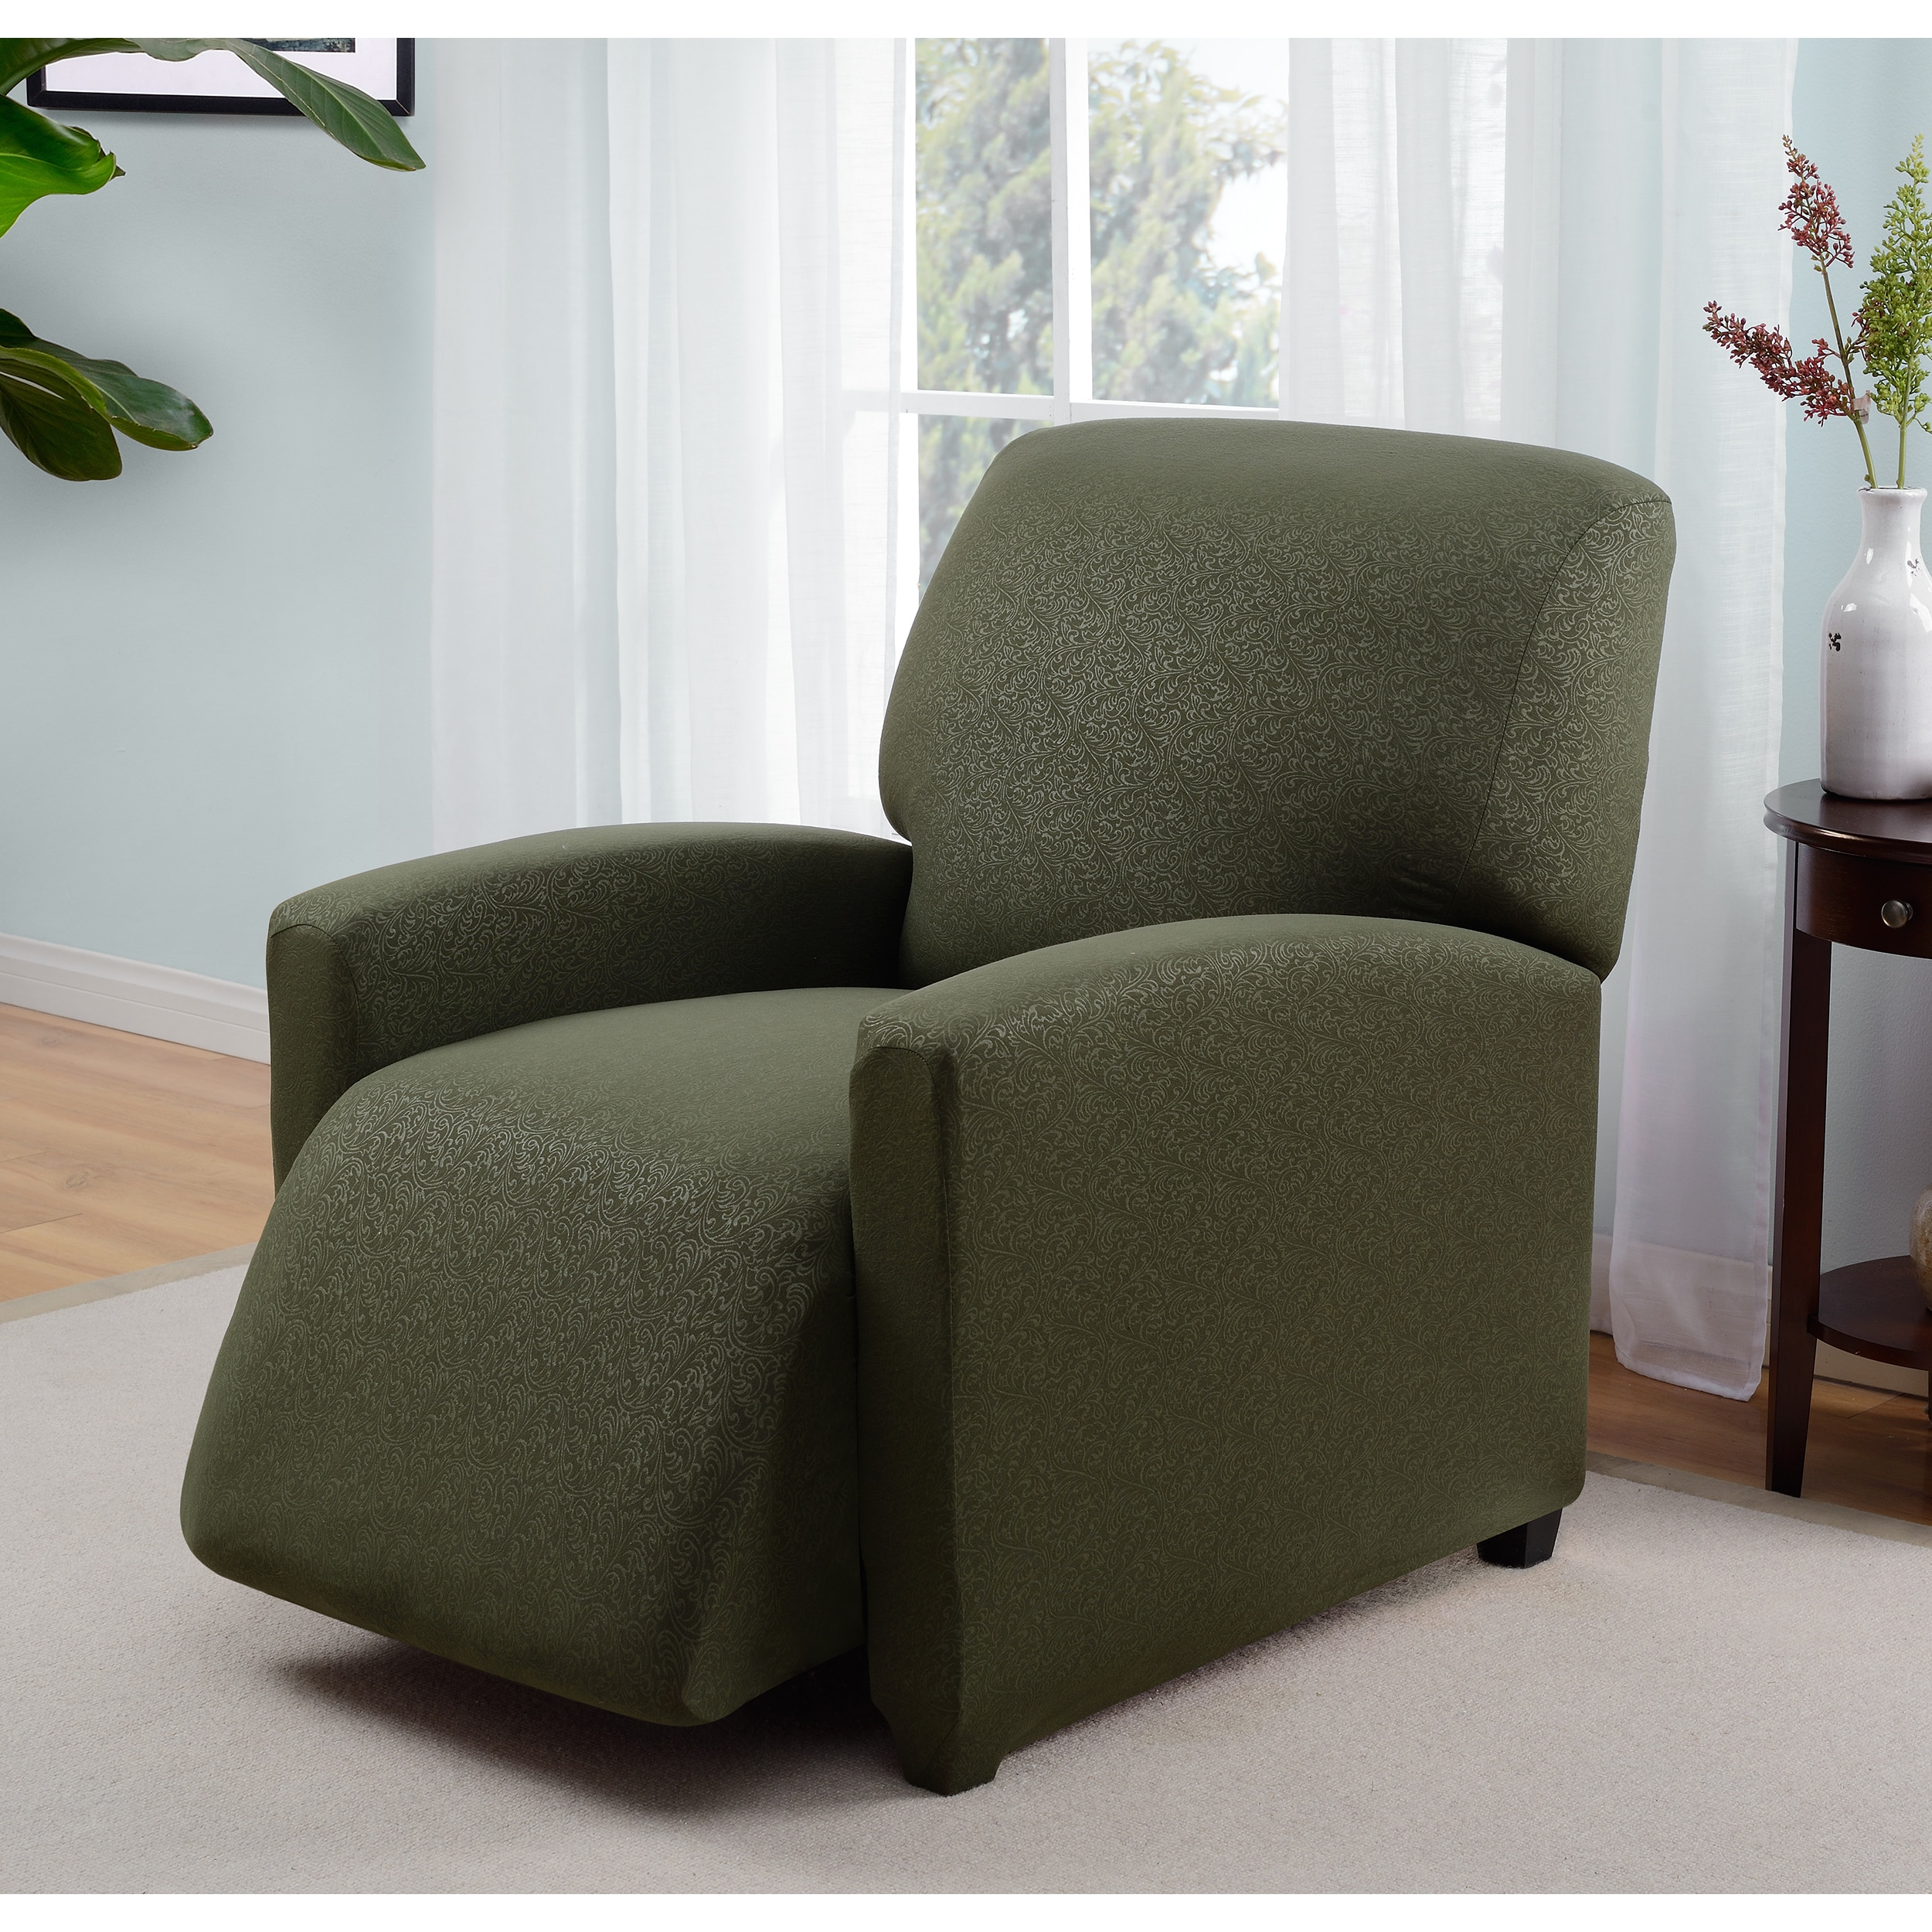 Madison Industries Stretch Jersey Scroll Recliner Slipcover